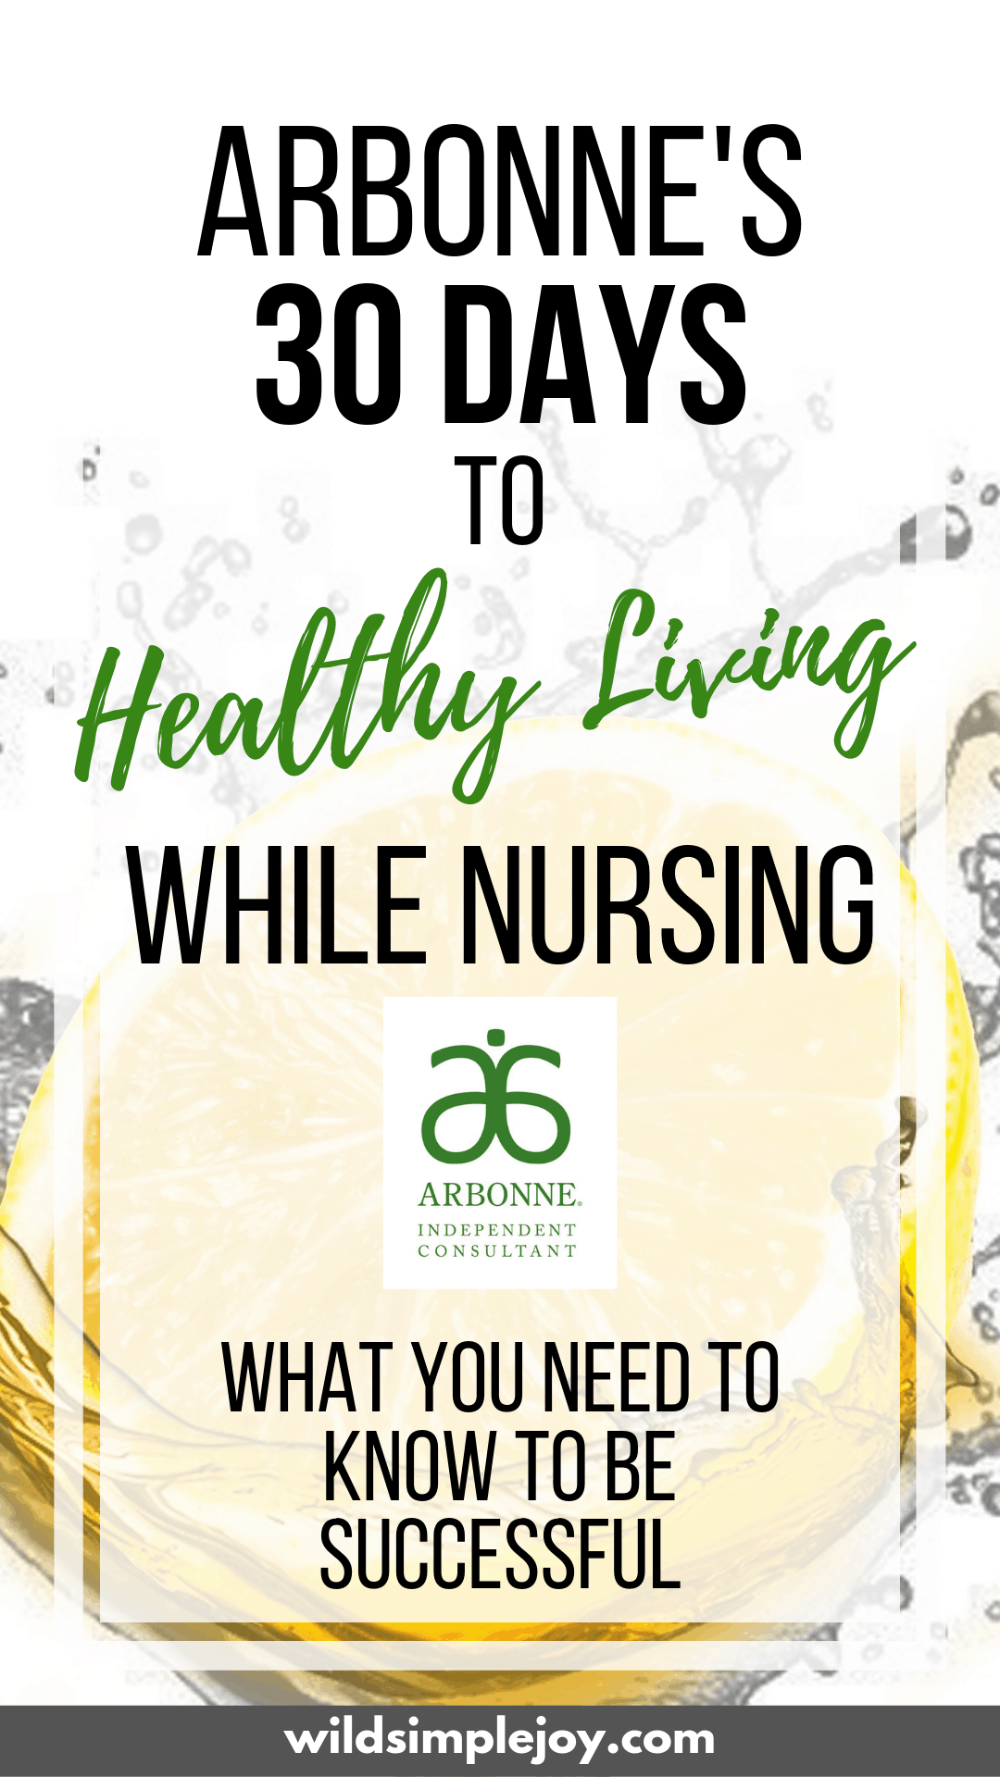 Arbonne's 30 Days to Healthy Living While Nursing: What You Need to Know. Your body changes significantly while lactating. I can't give you medical advice, but here is what I did to make my 30 Days to Healthy Living Program successful while nursing! Wild Simple Joy. #arbonne #30daystohealthyliving #healthyliving #cleaneating #breastfeeding #nursingmother #cleaneatingwhilebreastfeeding